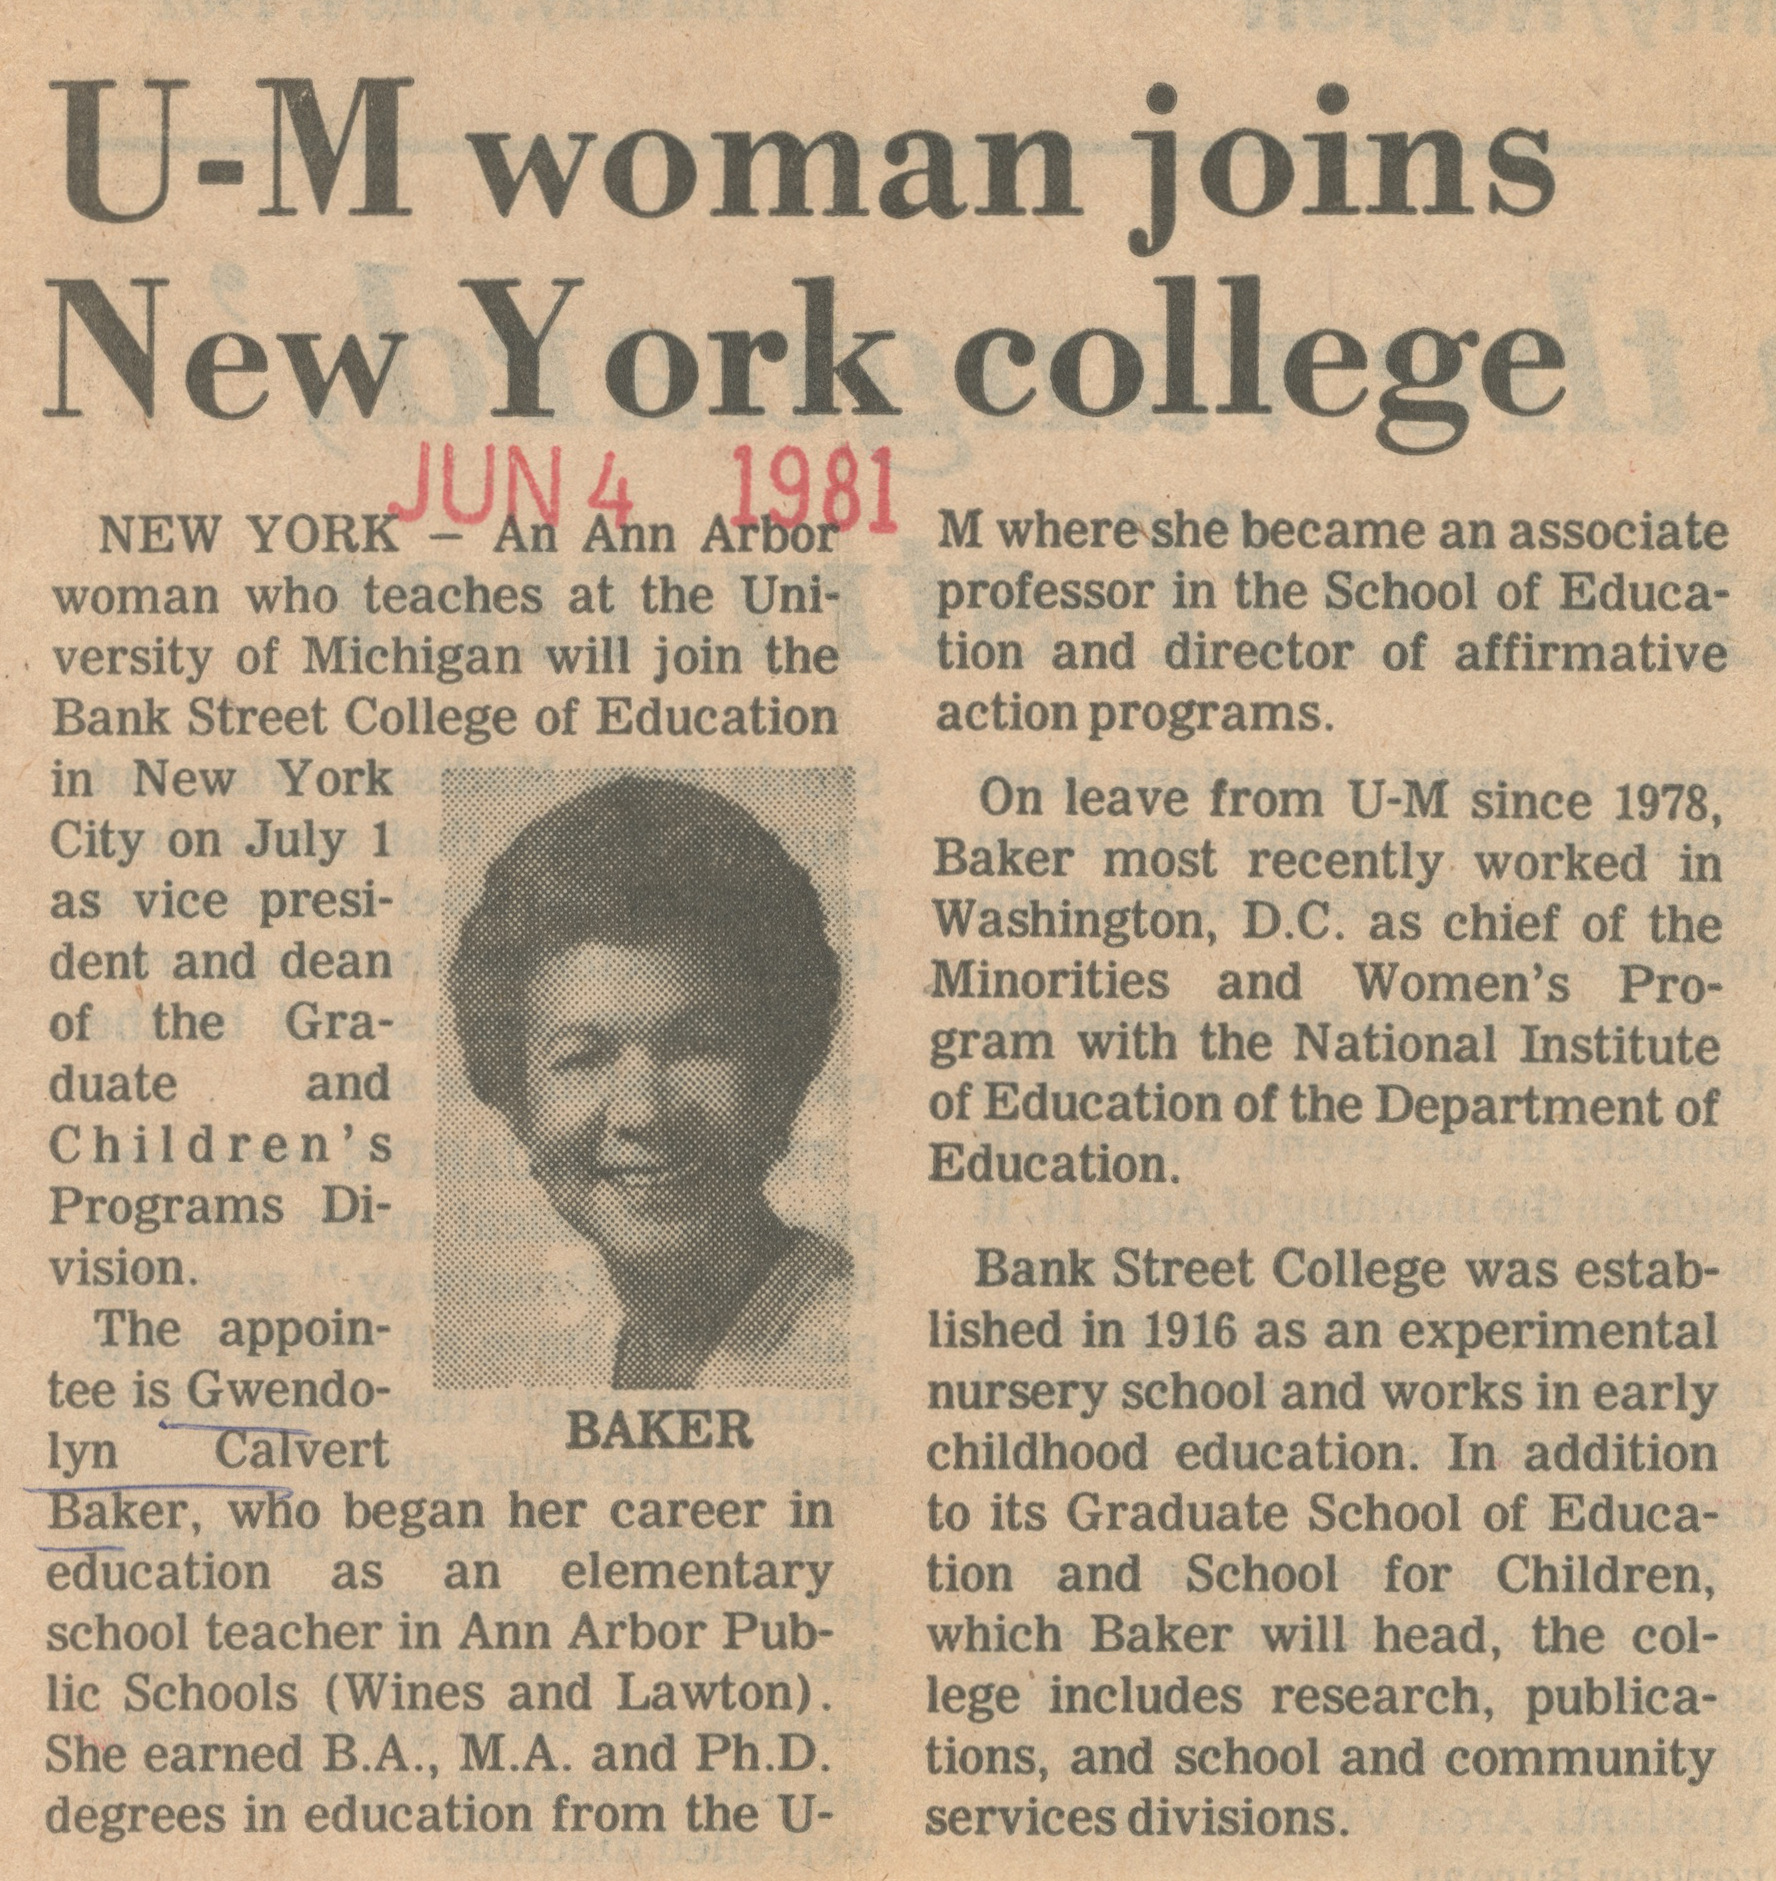 U-M Woman Joins New York College image